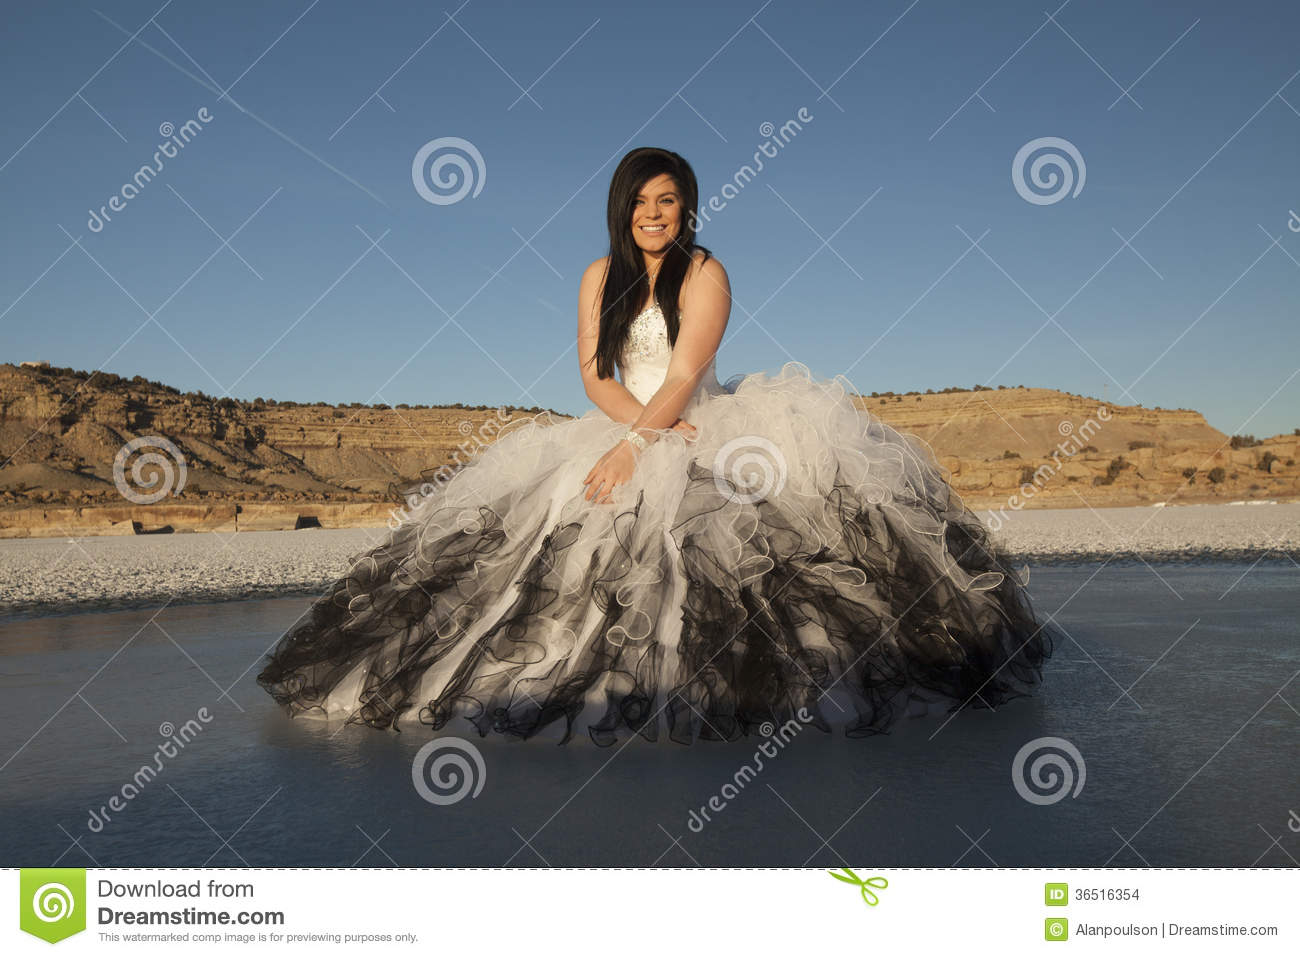 Woman formal dress ice sit smile blue sky